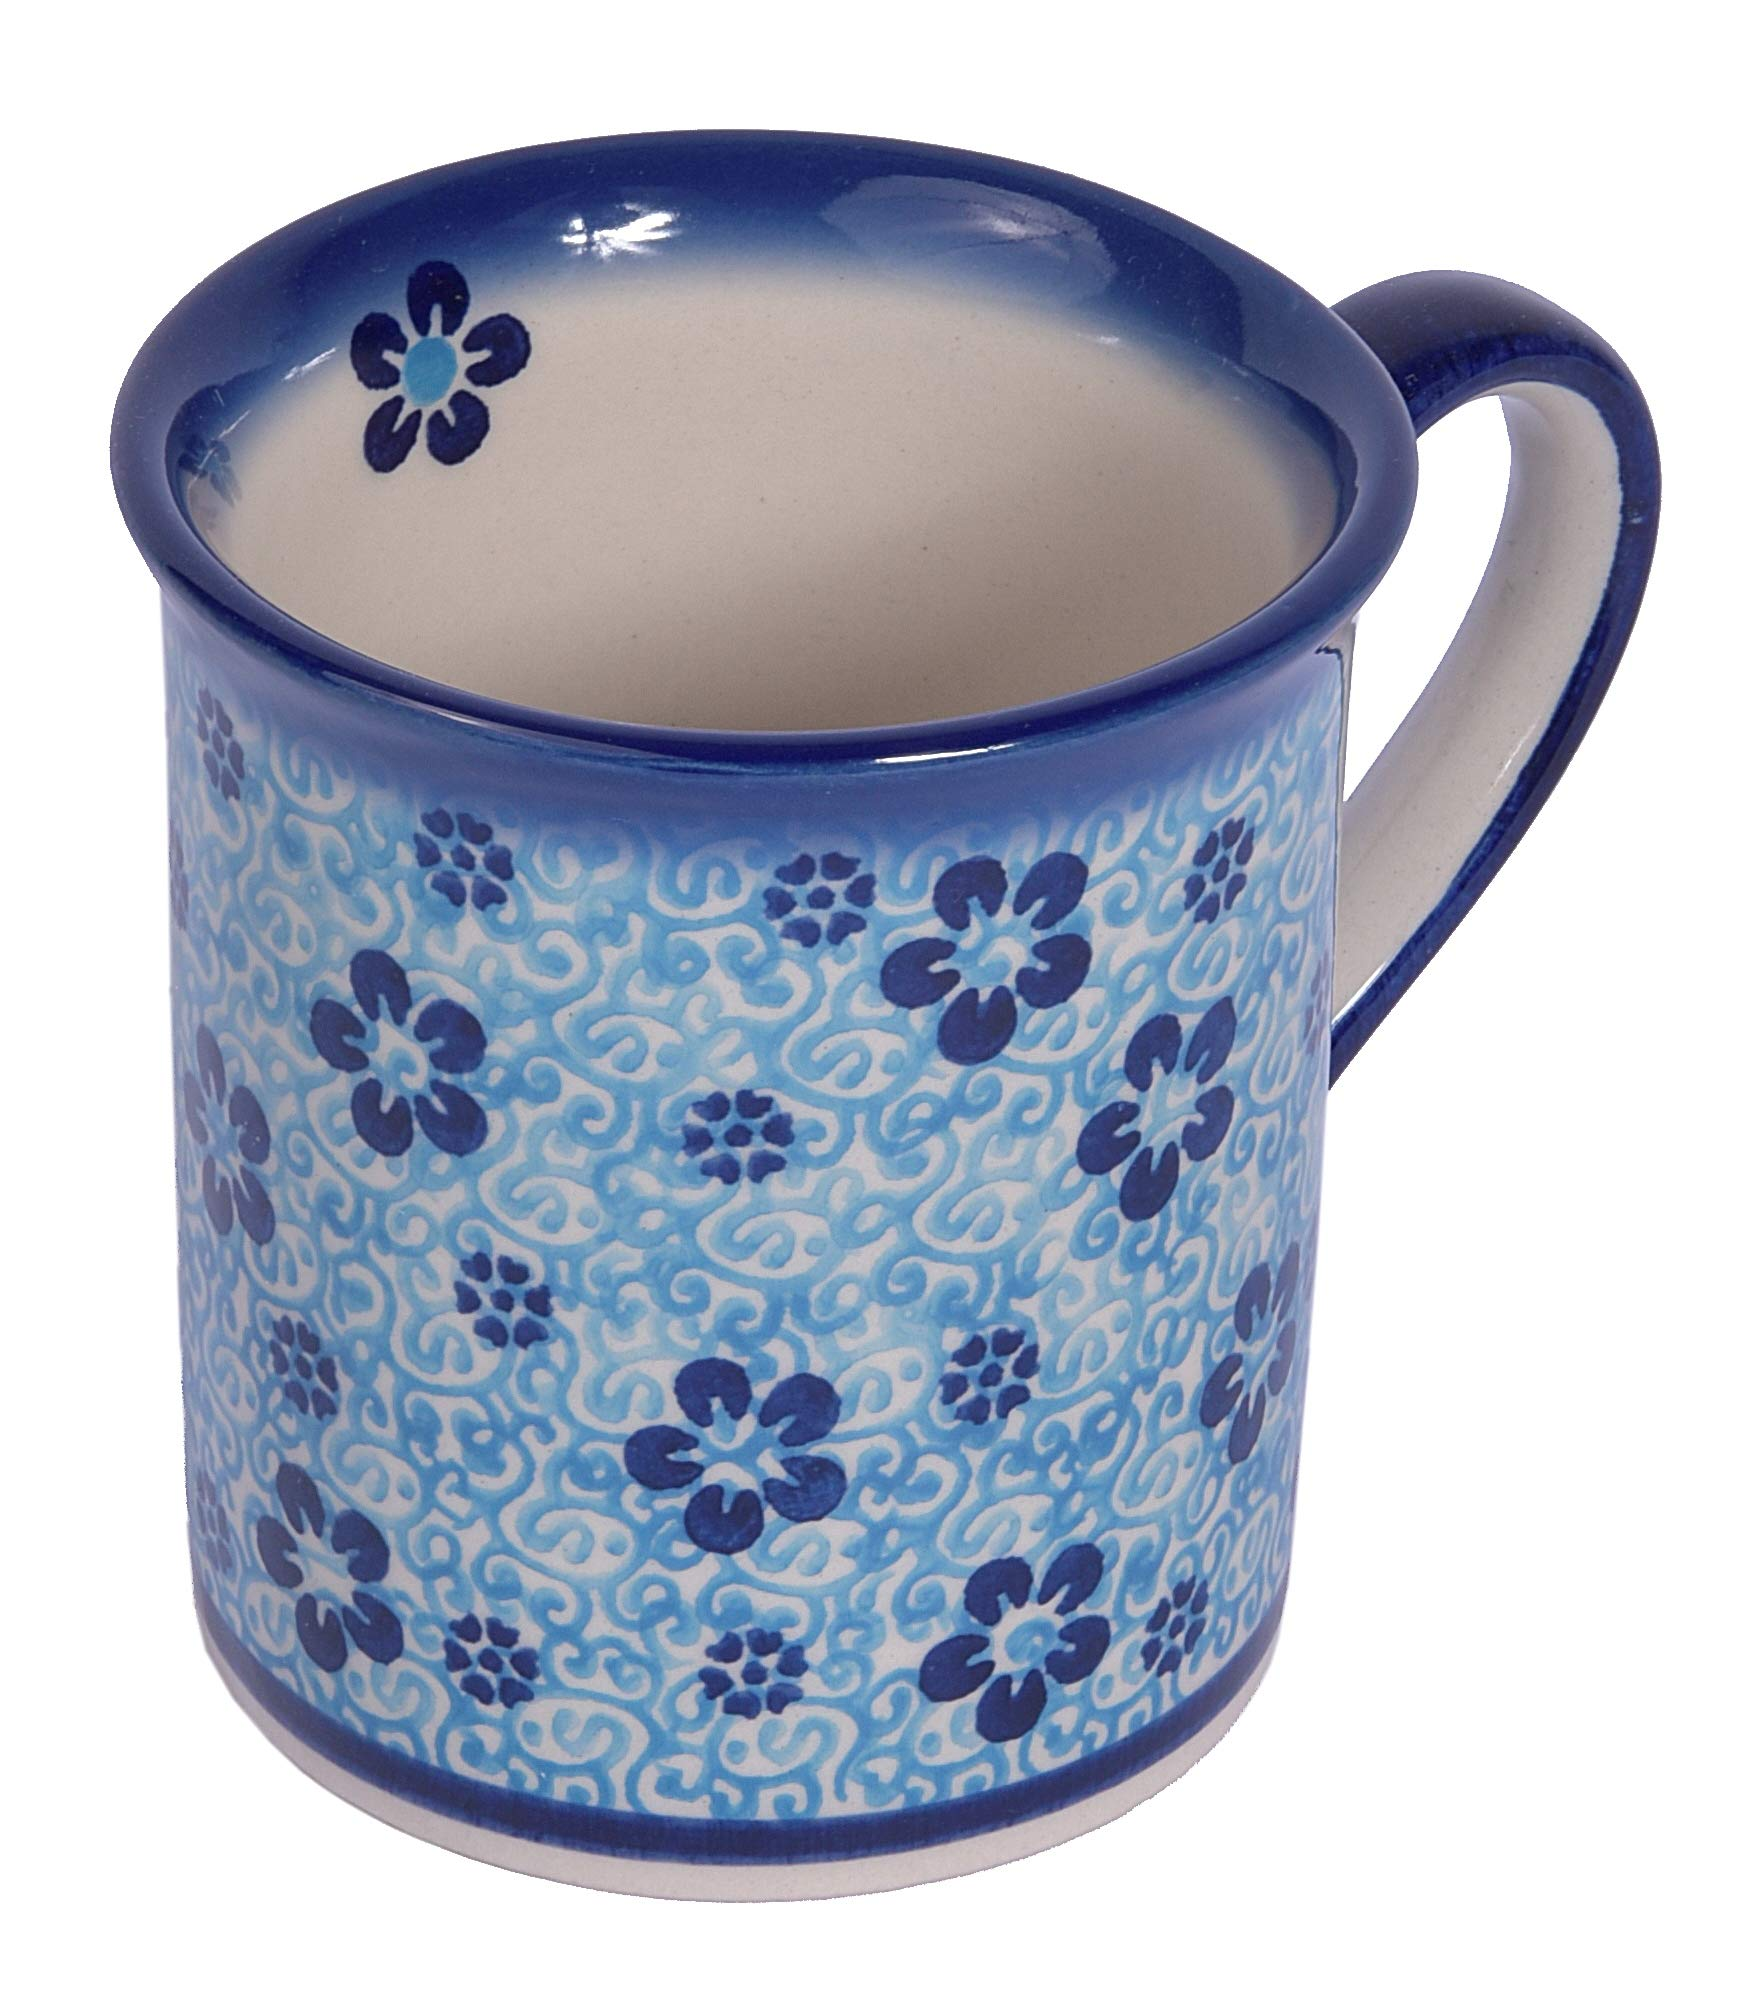 Traditional Polish Pottery, Handcrafted Ceramic Funnel-shaped Mug (300ml / 10.5 fl oz), Boleslawiec Style Pattern, Q.301.PASSION